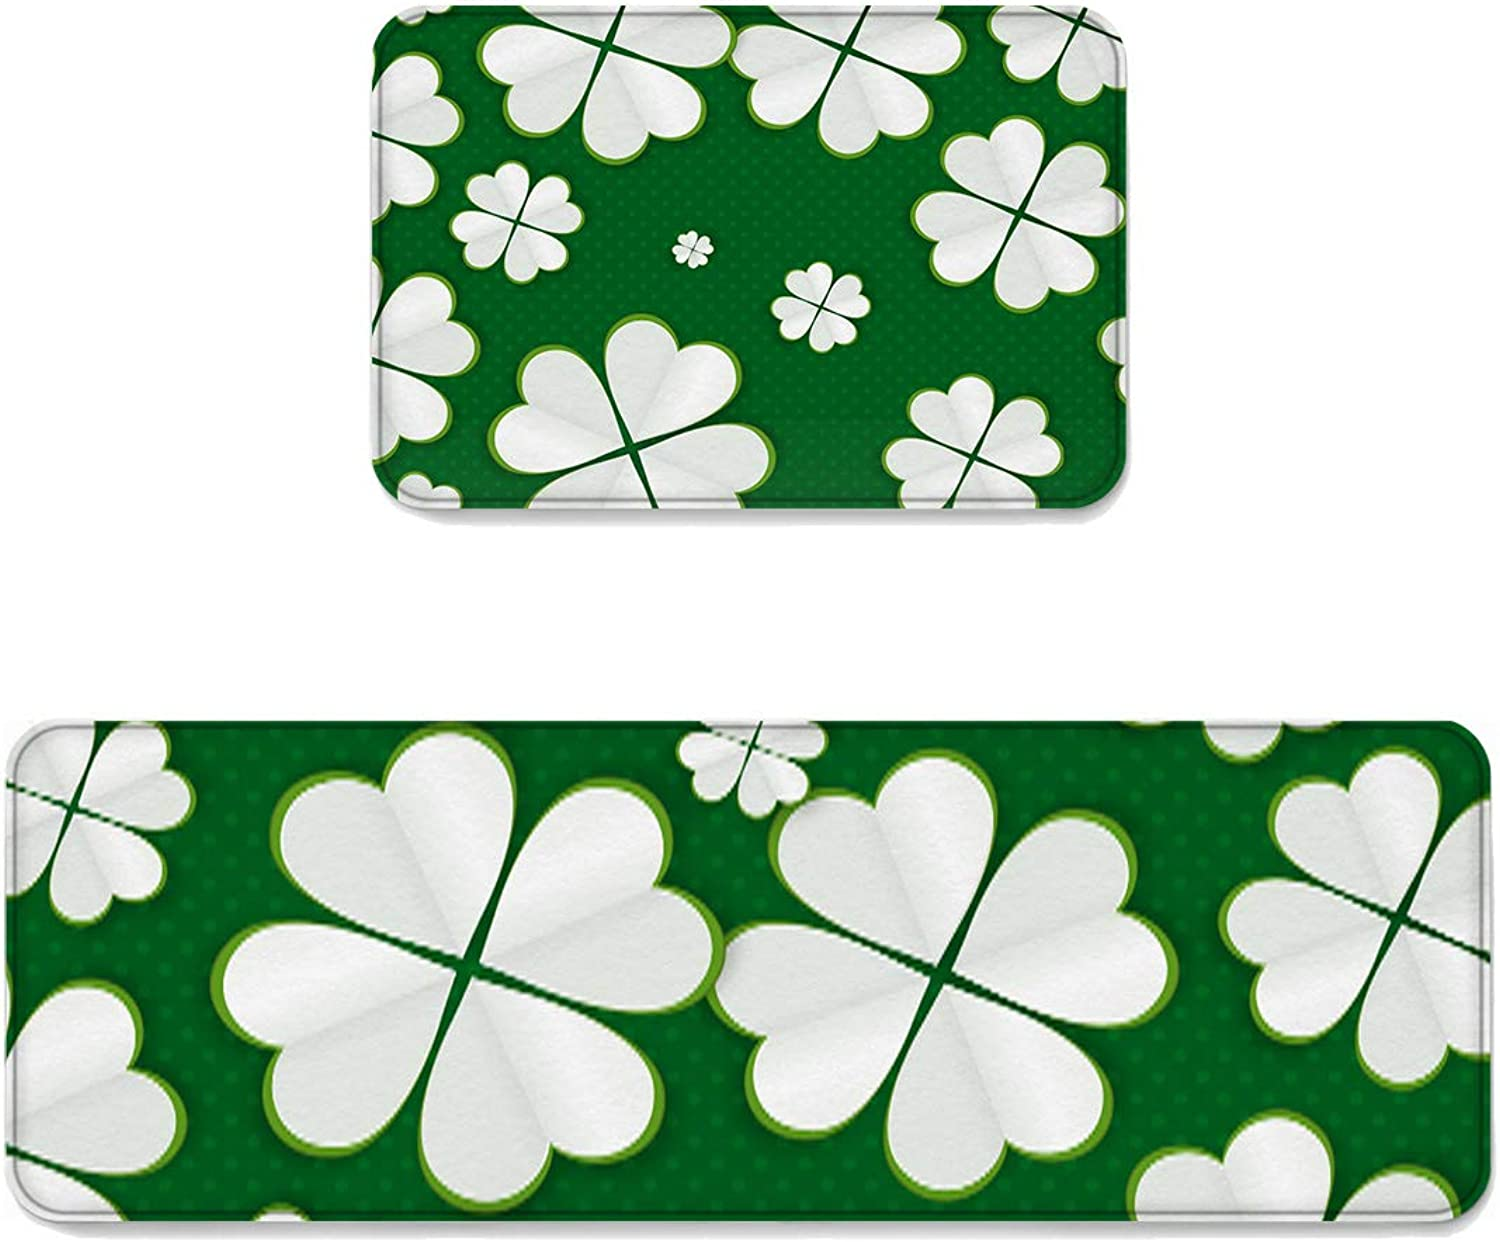 Kitchen Rug Sets 2 Piece Floor Mats Non-Slip Rubber Backing Area Rugs White Four Leaf Shamrock and Dots Pattern Doormat Washable Carpet Inside Door Mat Pad Sets (19.7  x 31.5 +19.7  x 63 )